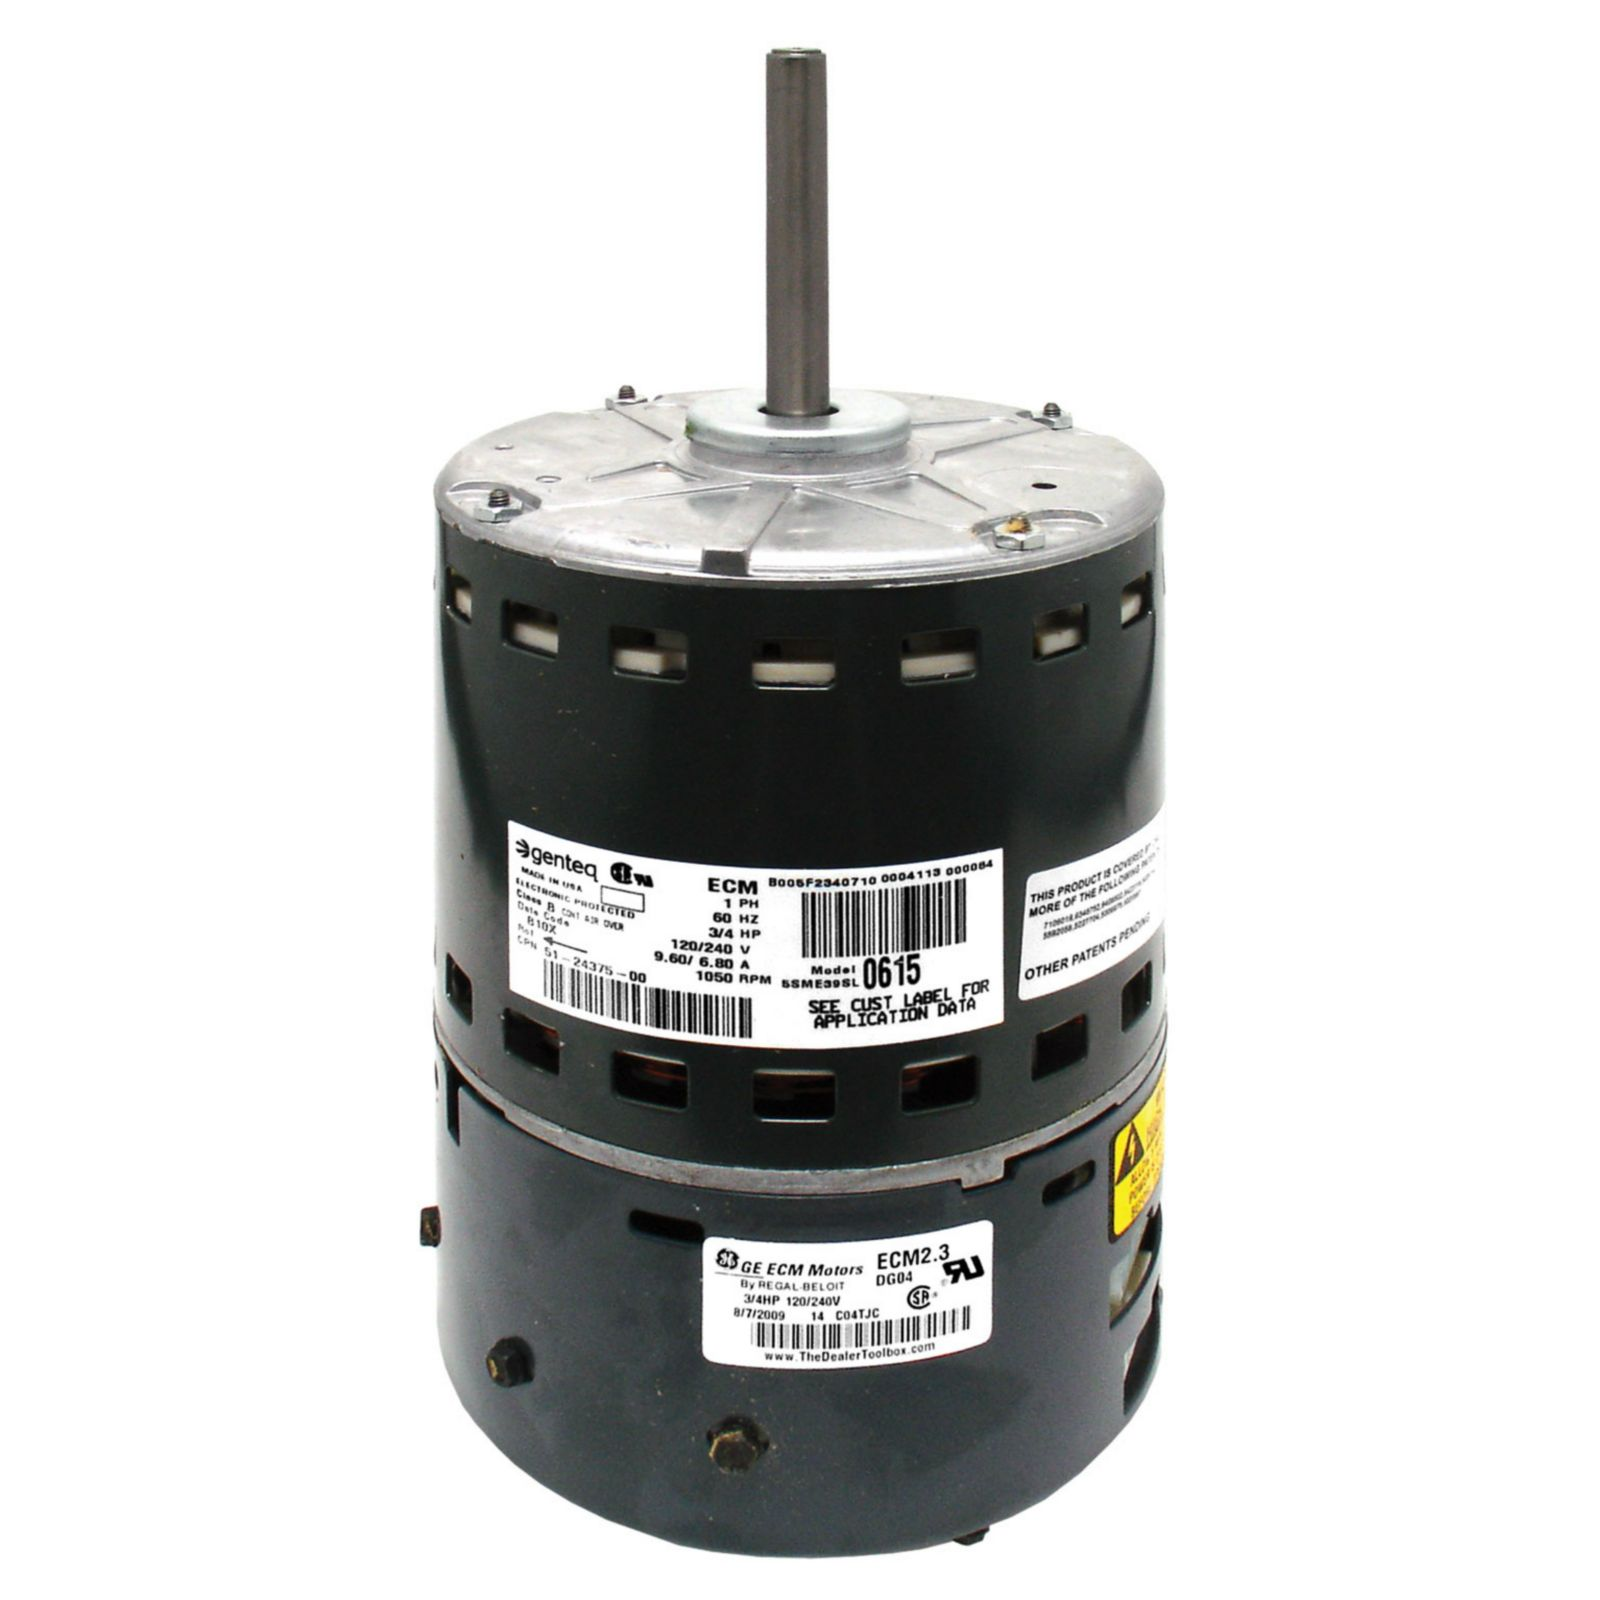 Electric Motor Capacitor Wiring Diagram Free Download further Emc Motor Wiring Diagrams moreover Electric Car Engine Diagram as well Wiring Diagram For Ao Smith Condenser Fan Motor as well 2 Hp Single Phase Electric Motor Wiring Connections. on wagner electric motors wiring diagram